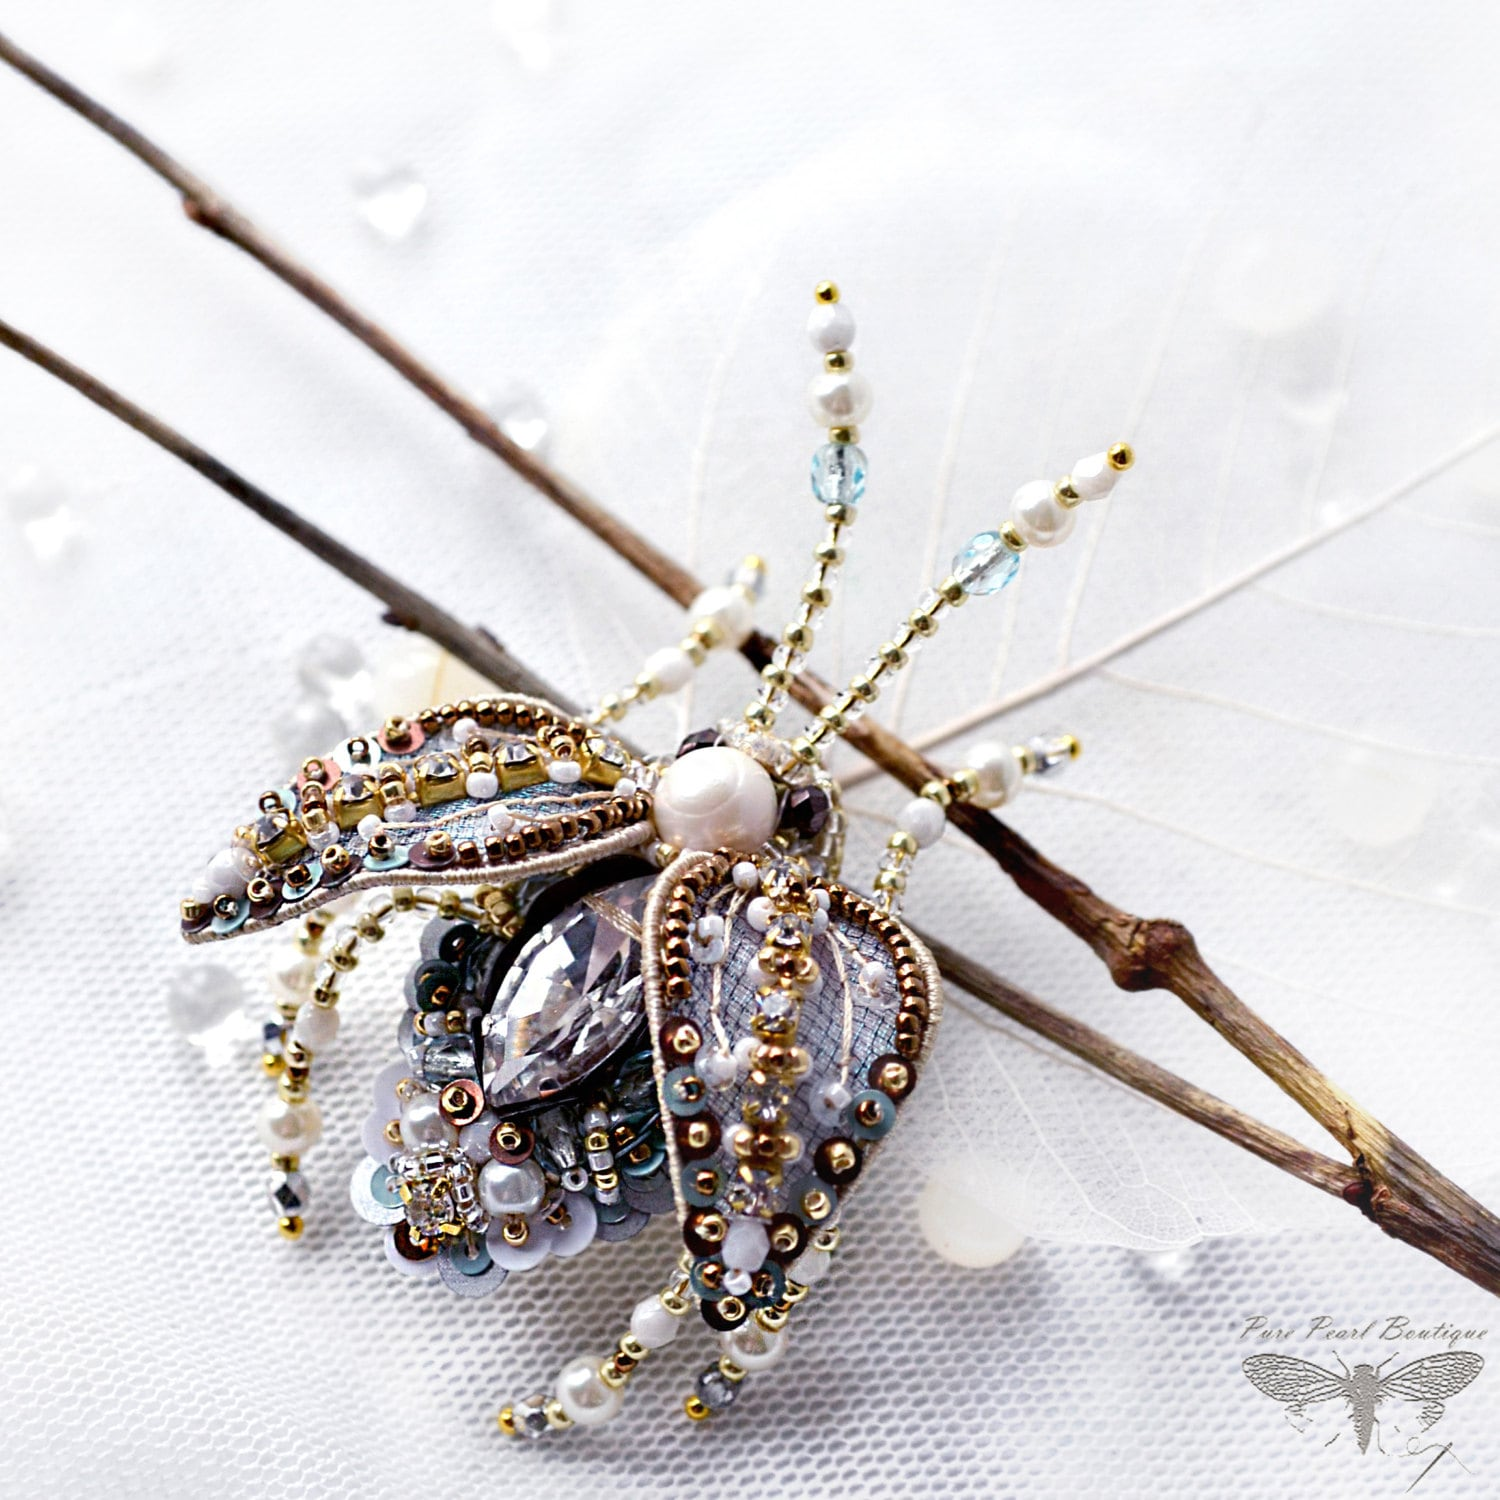 buccellati high animalier jewelry fb en official coniglio brooch website brooches spilla rabbit